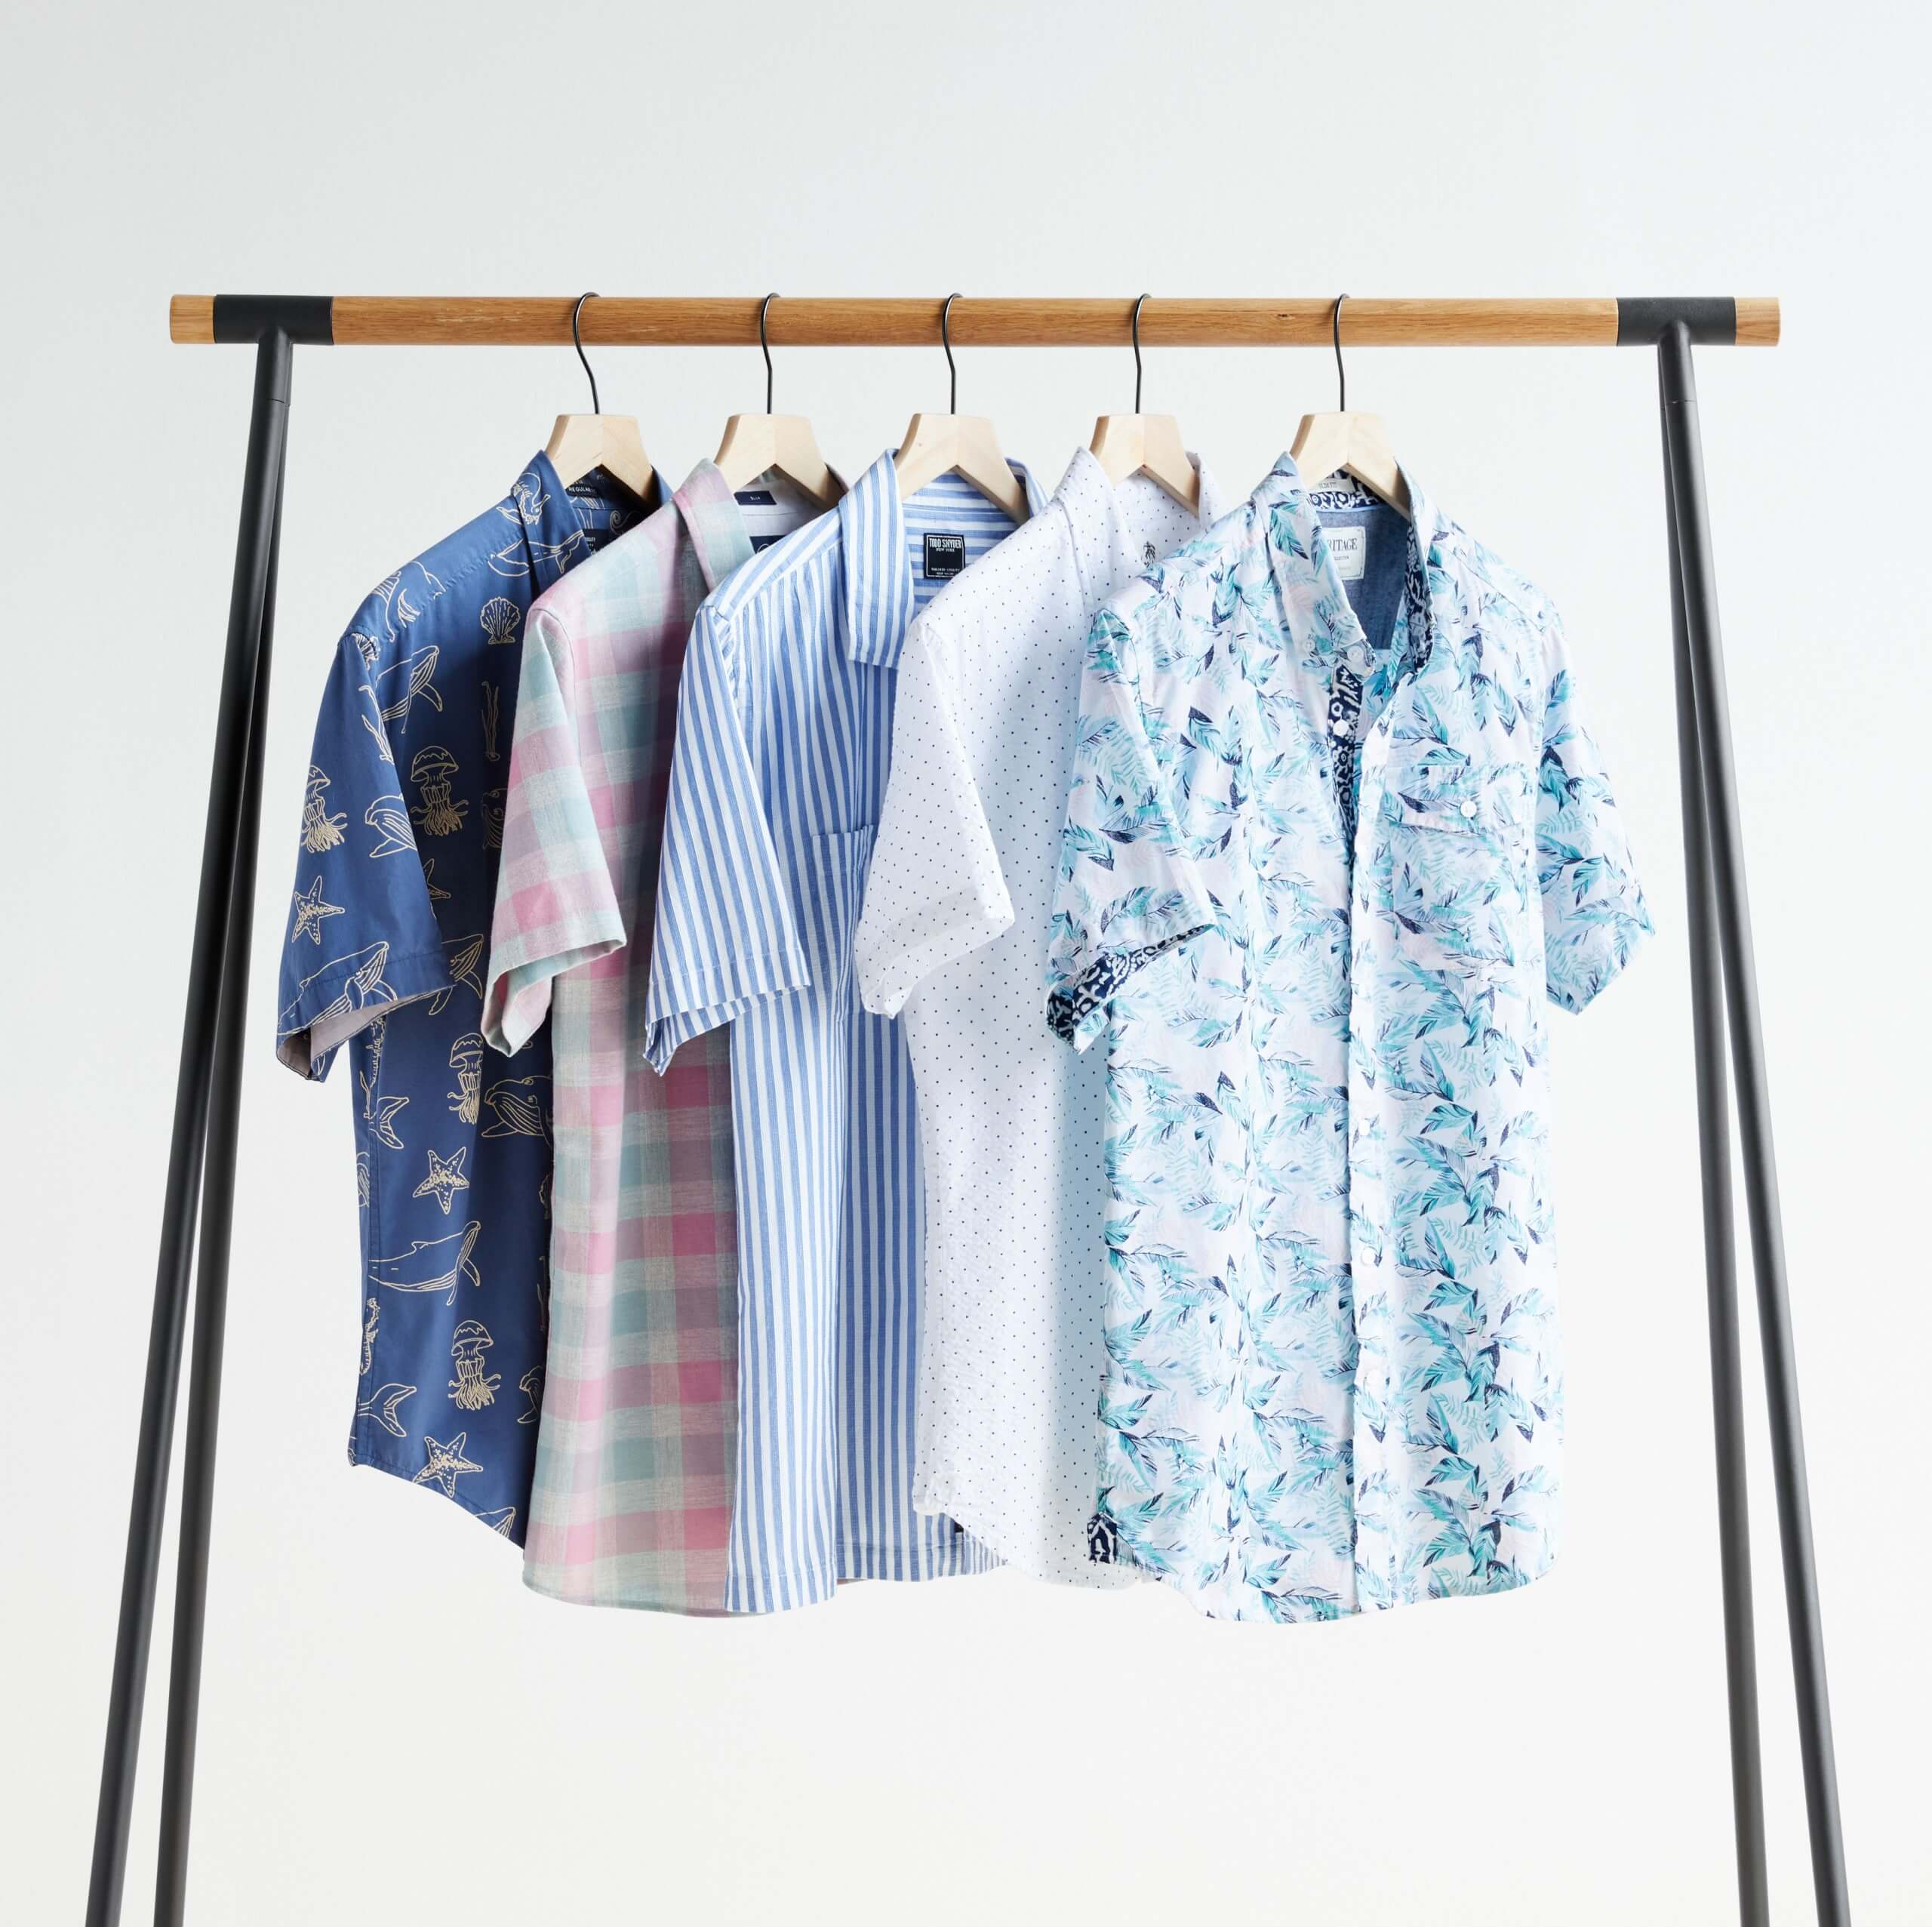 Stitch Fix Men's rack image with patterned short-sleeved button-down shirts in blue, white and pink.